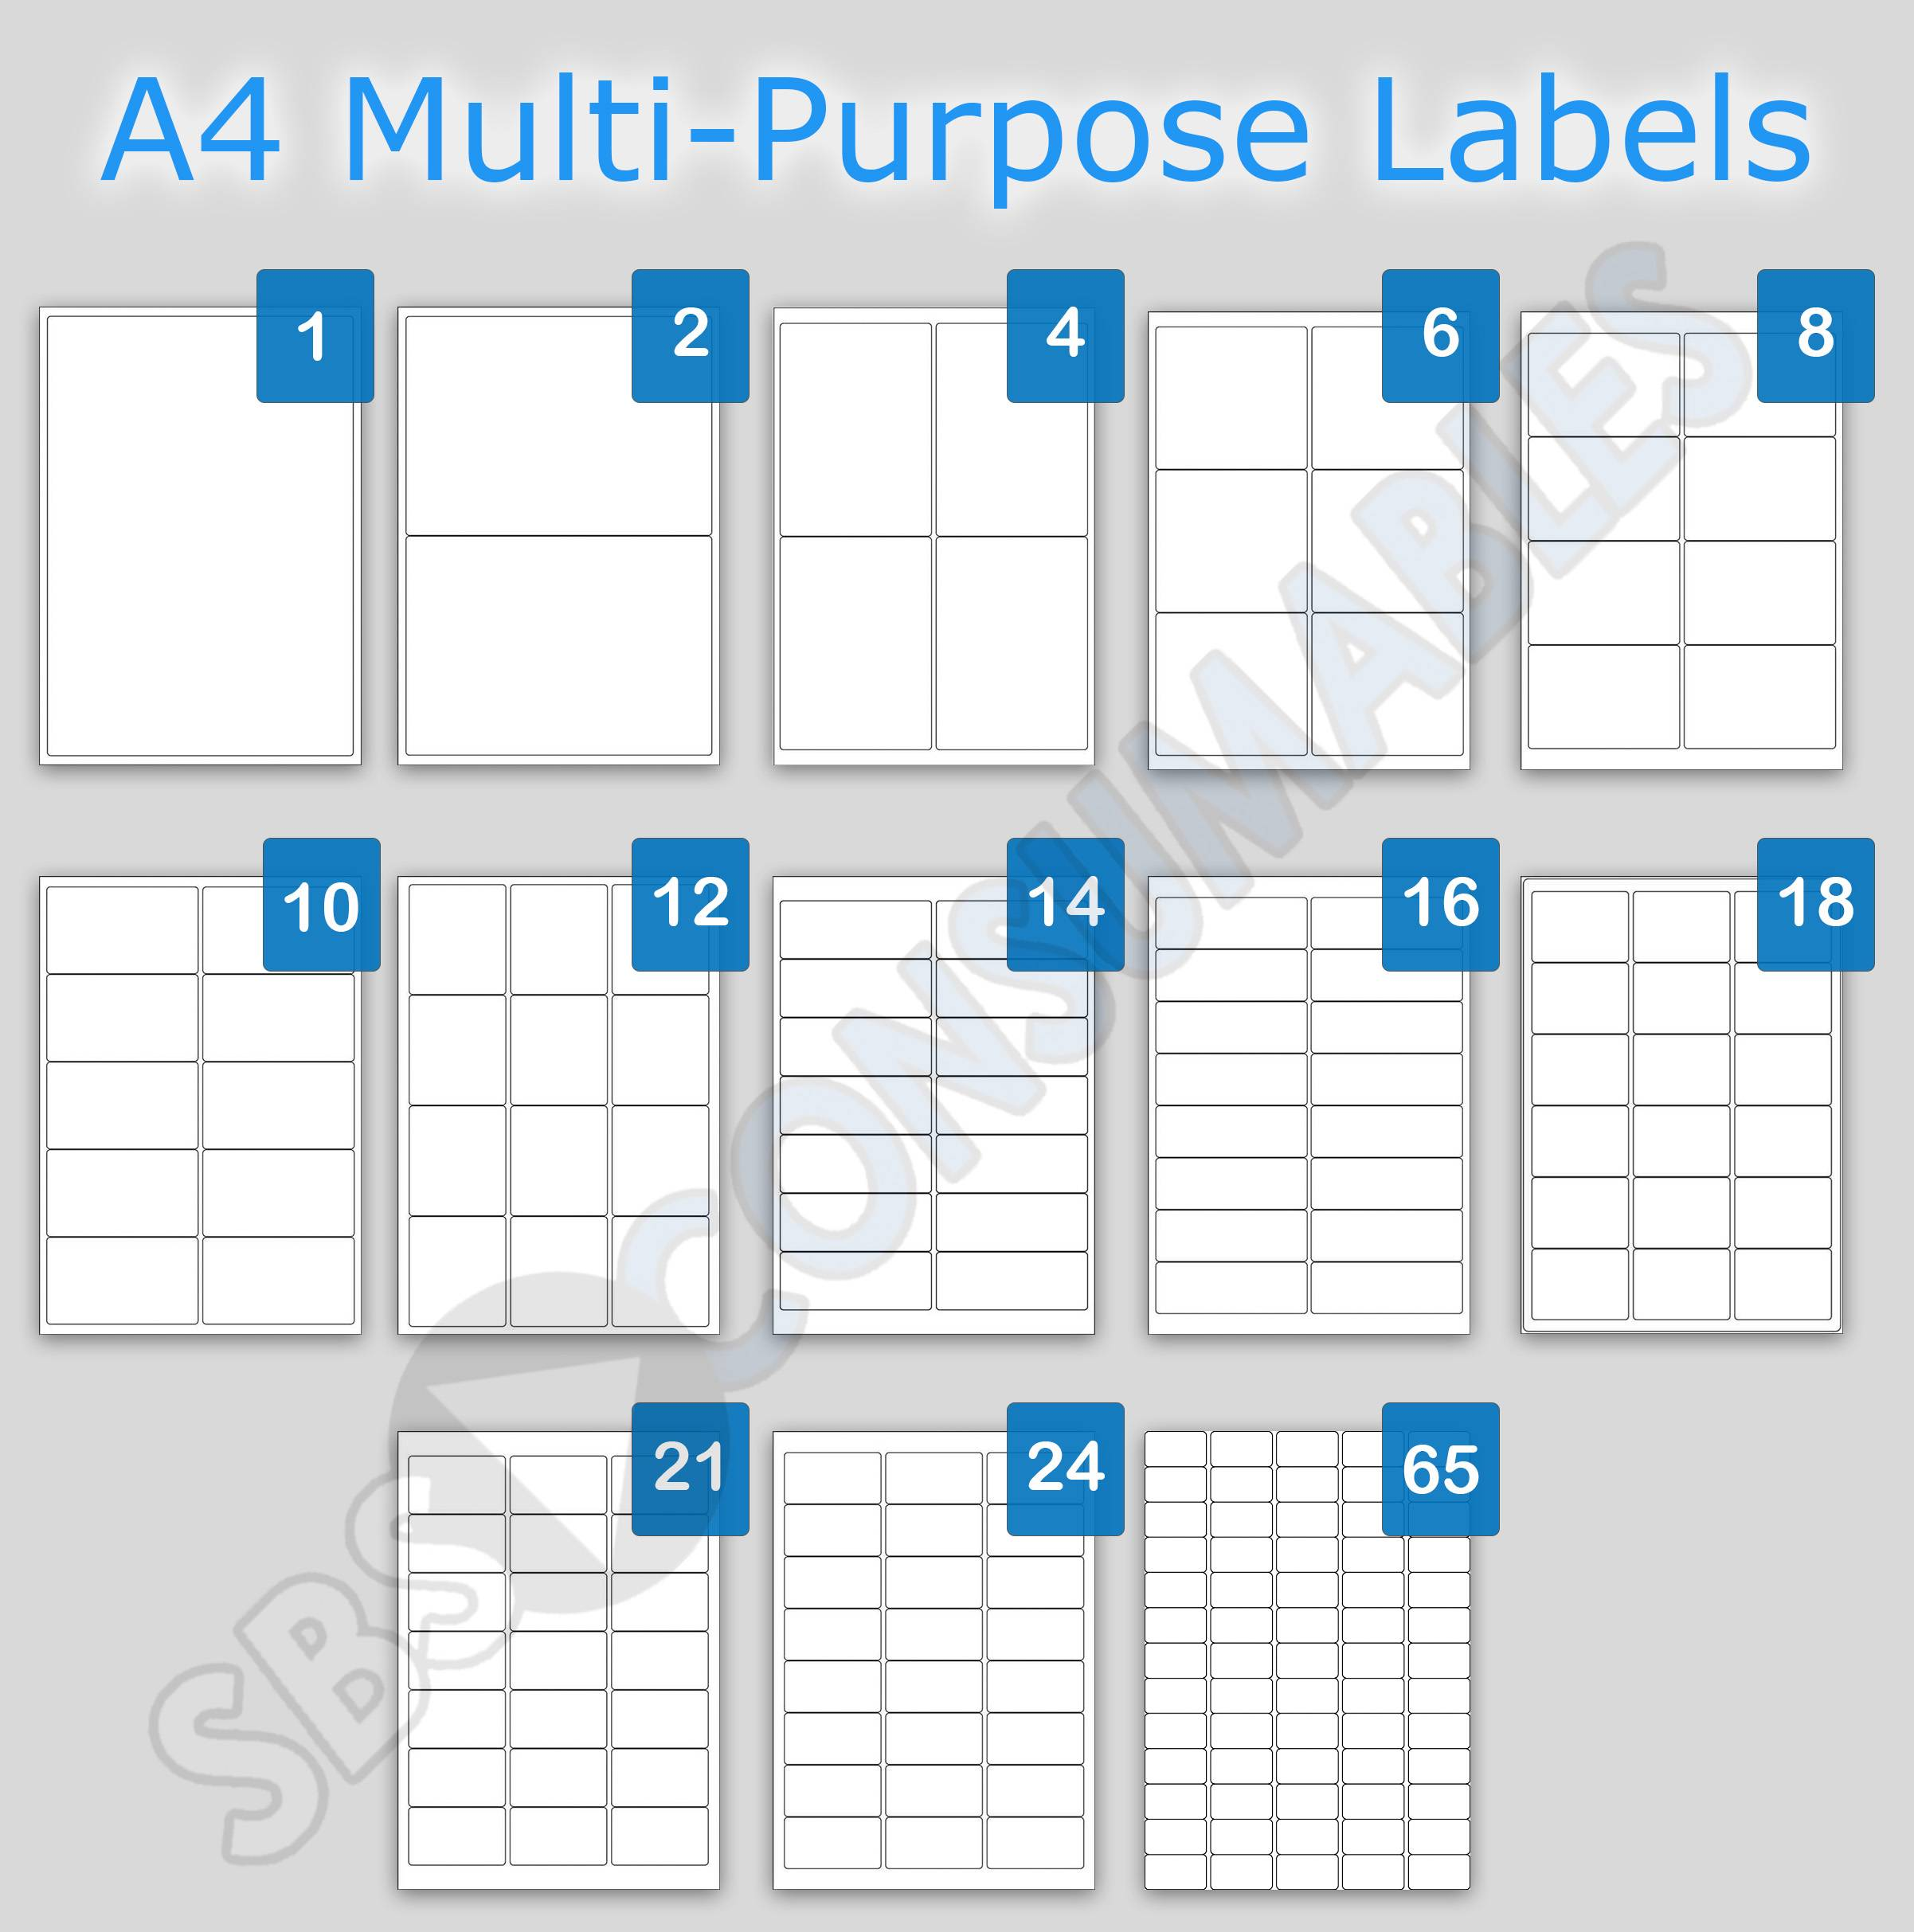 Template For Printing Sticky Labels